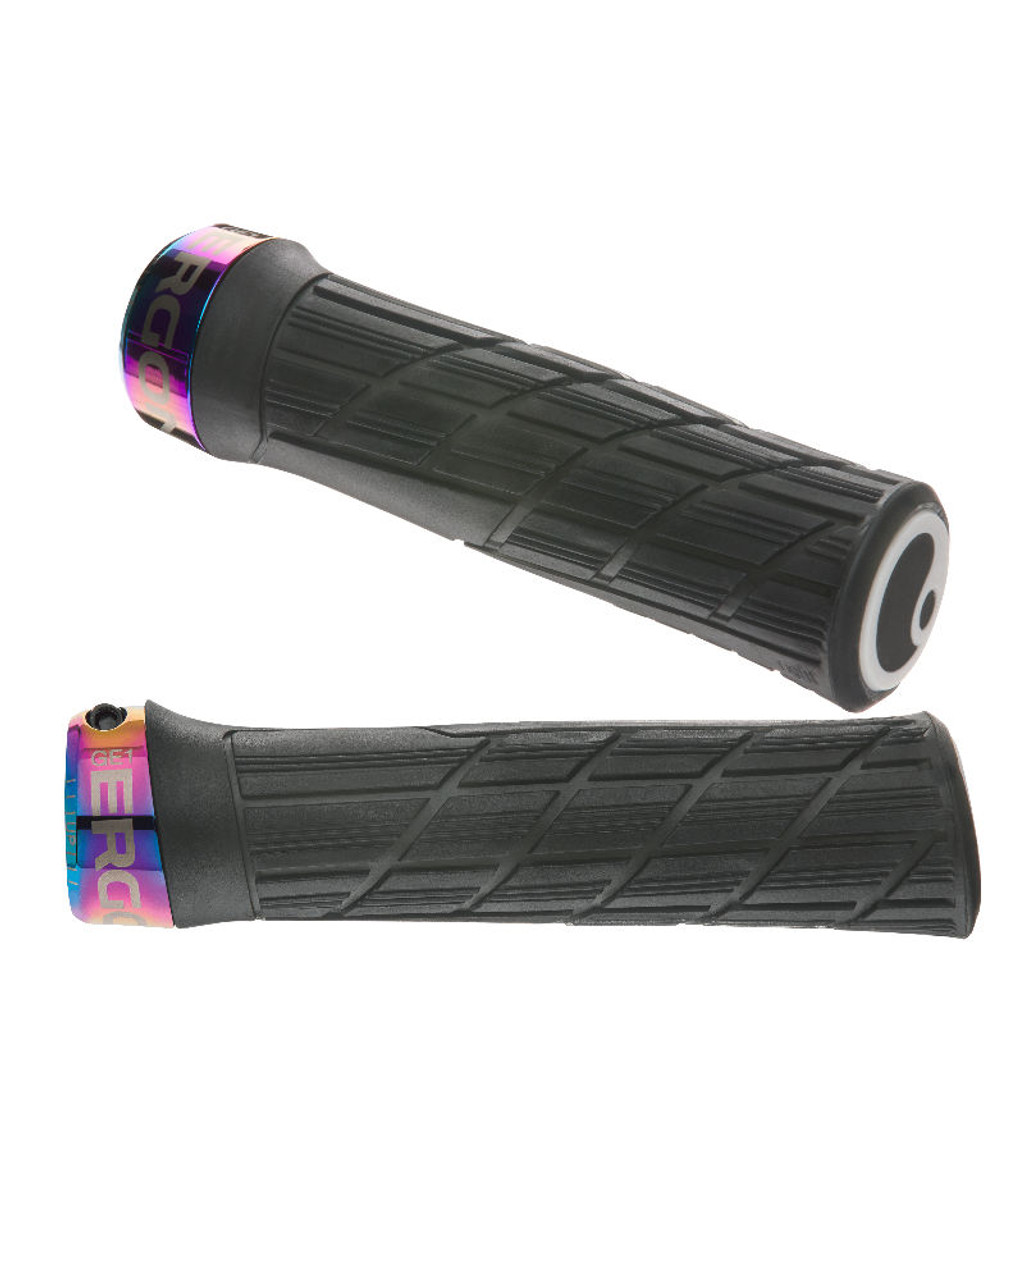 New Ergon GE1 Evo Factory Bike Grips Wide Riser Bars